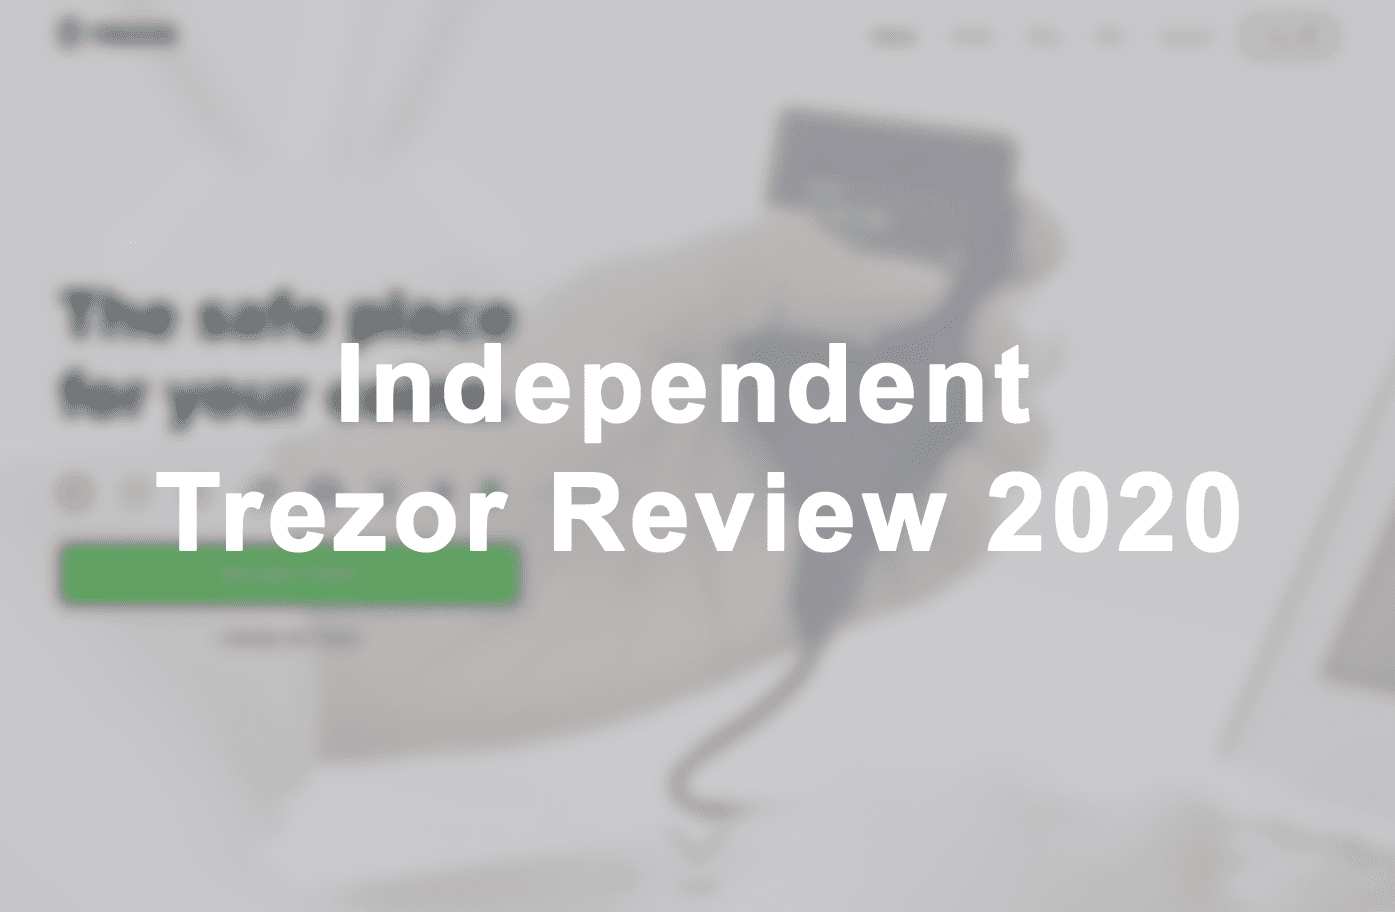 trezor review 2020 by safetrading